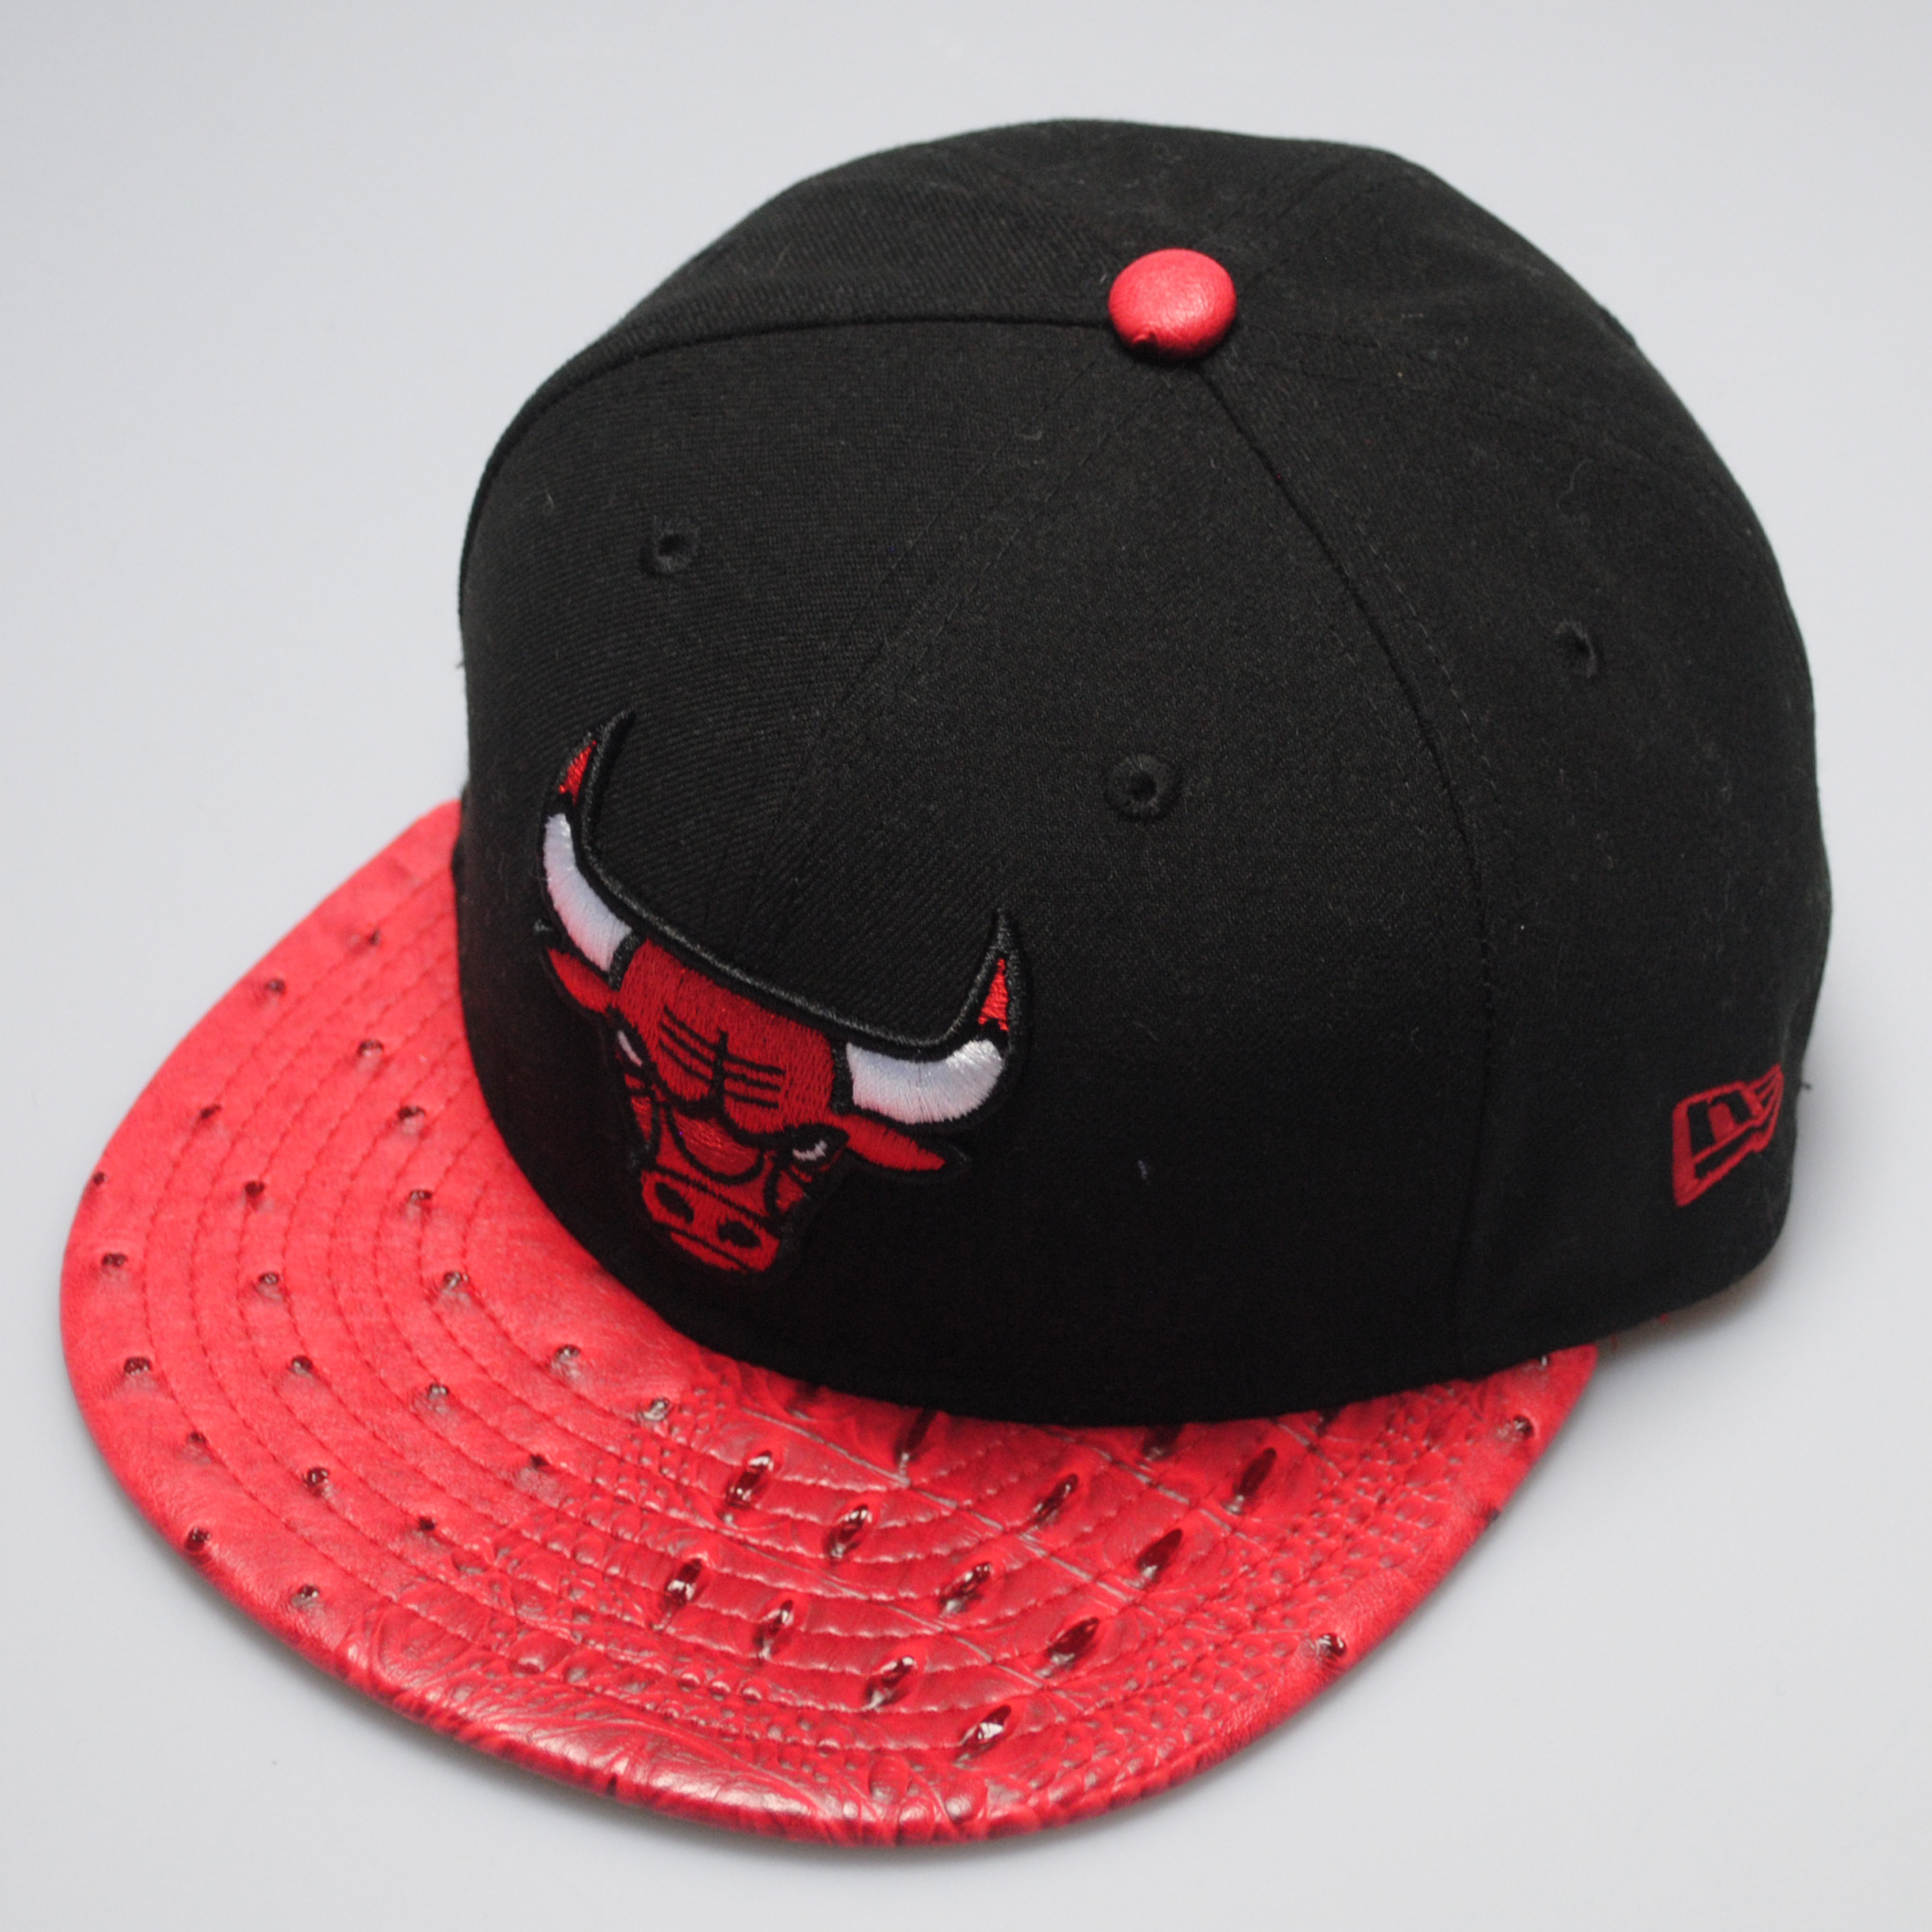 new era 59fifty chicago bulls reptile mix black red fitted flat peak hat cap ebay. Black Bedroom Furniture Sets. Home Design Ideas